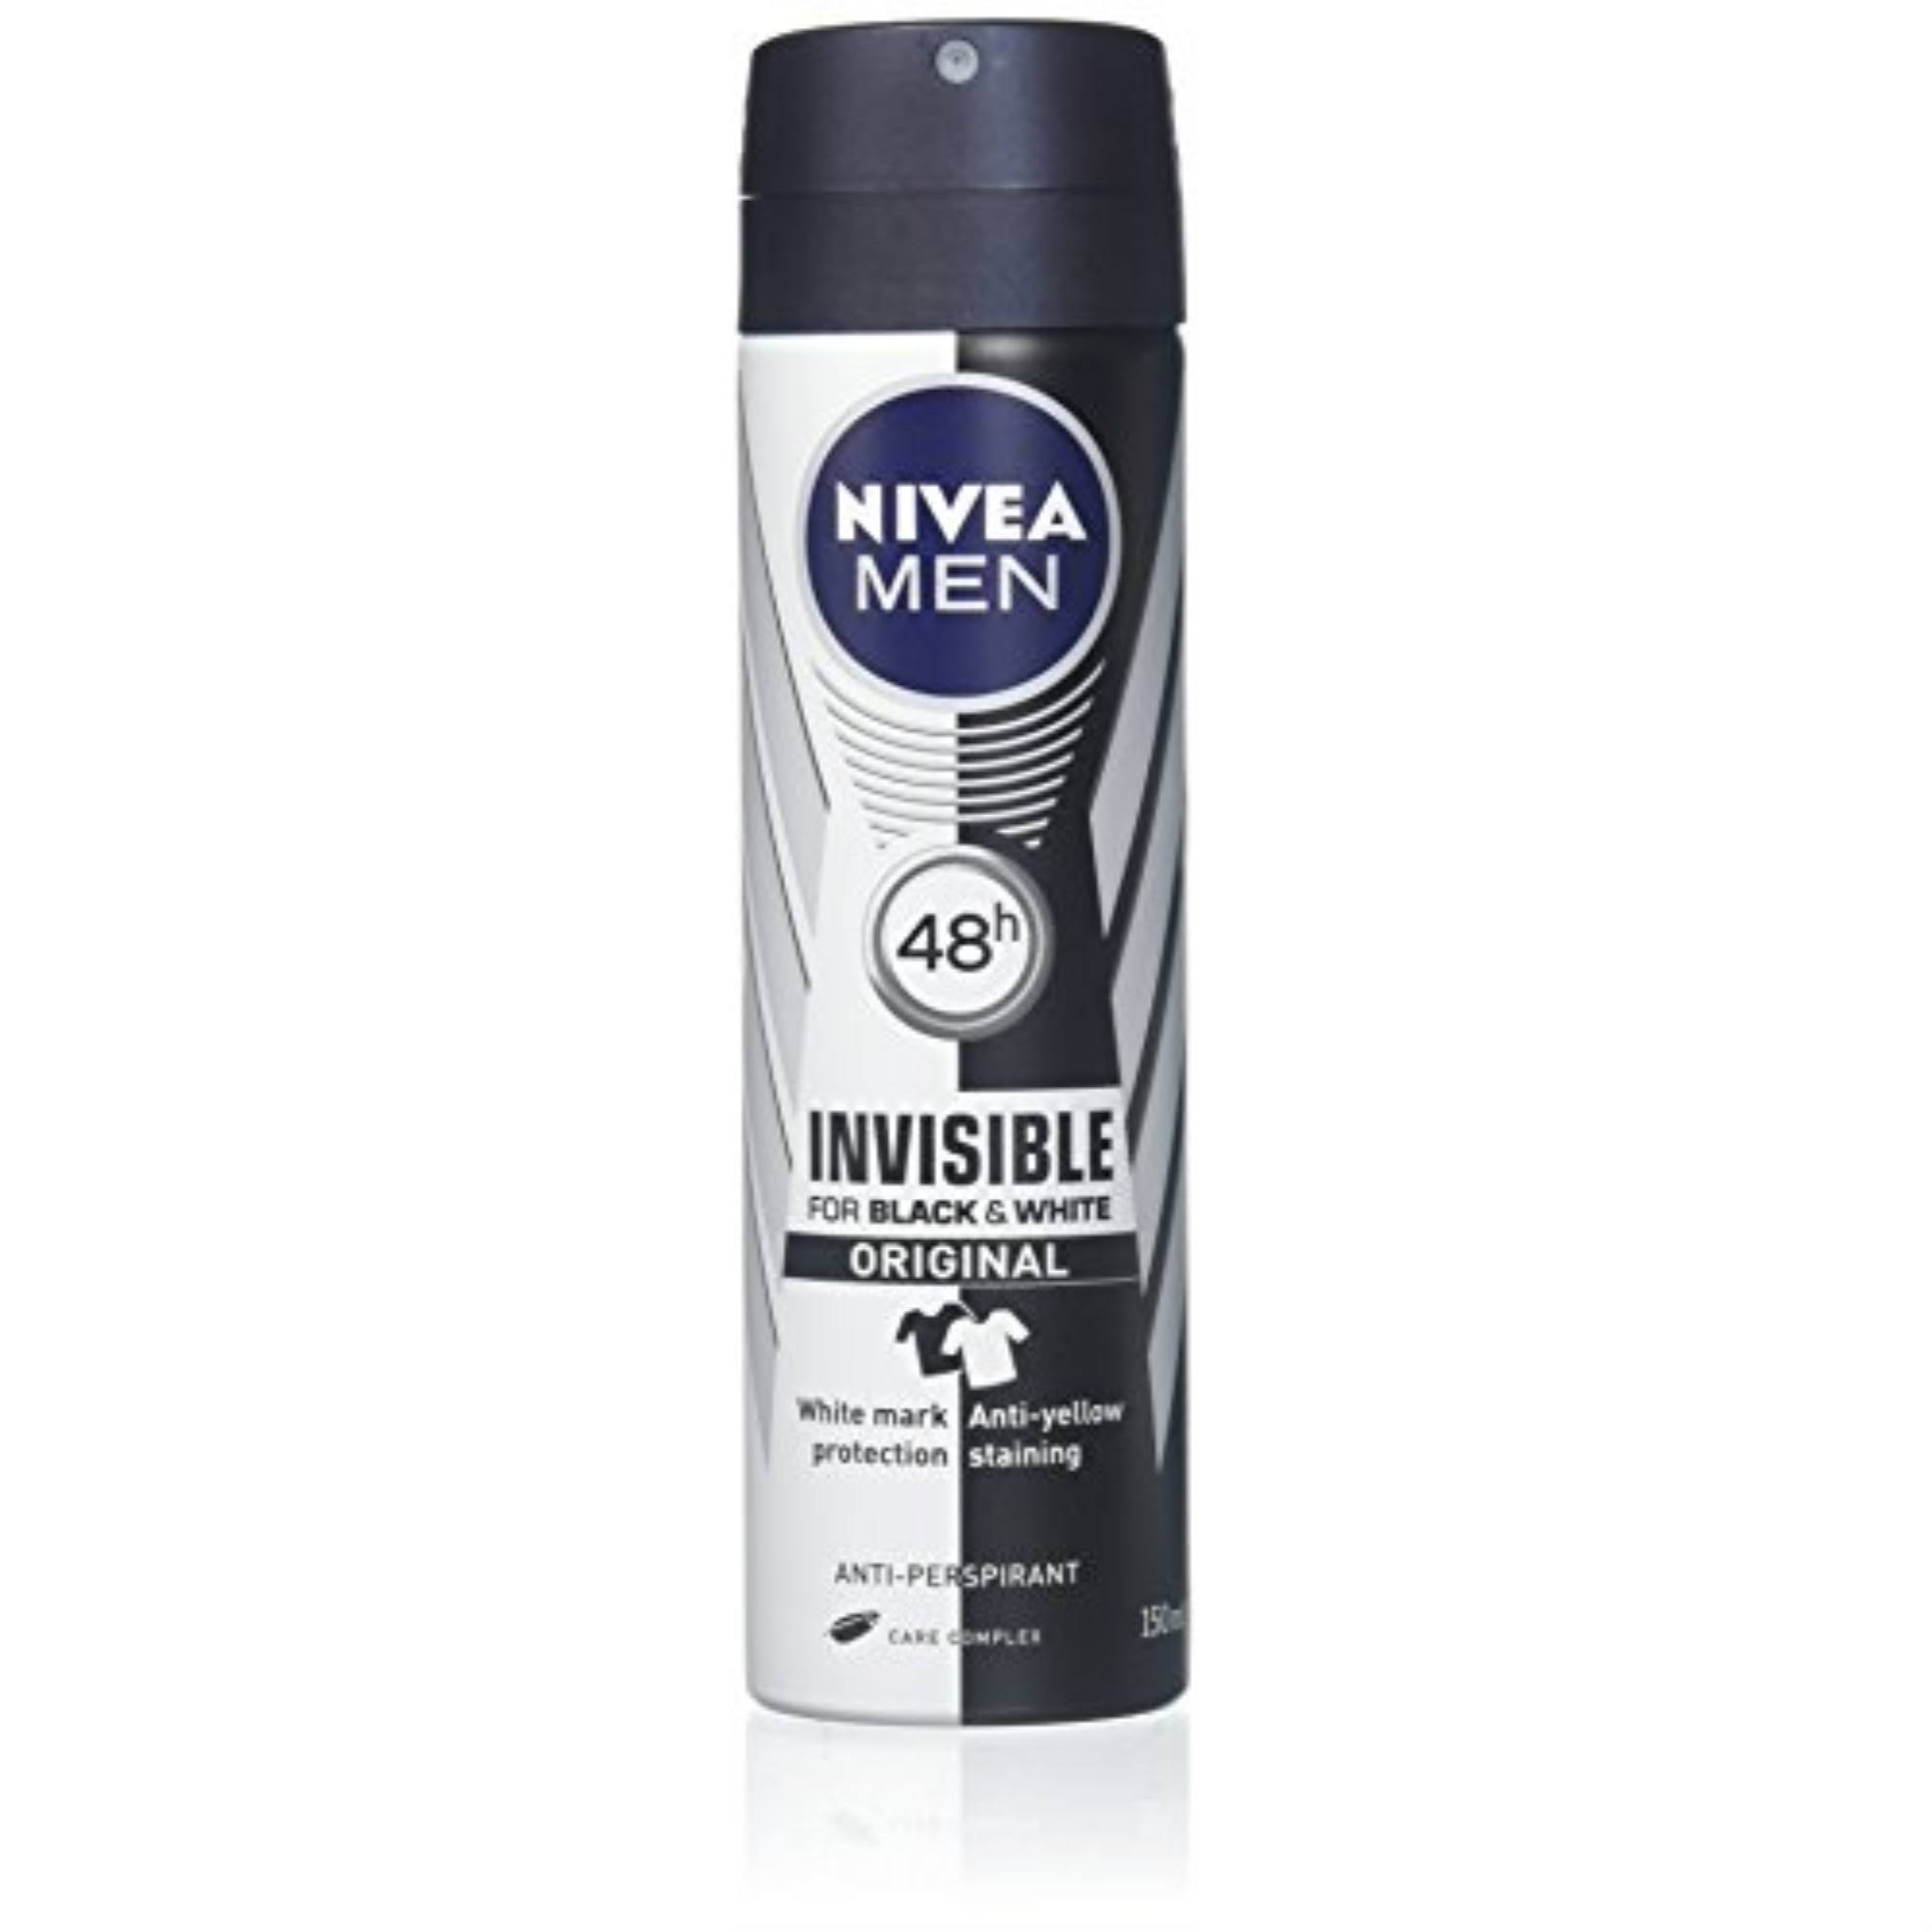 NIVEA Men's Black and White Original Anti-Perspirant Deodorant Spray - 150ml